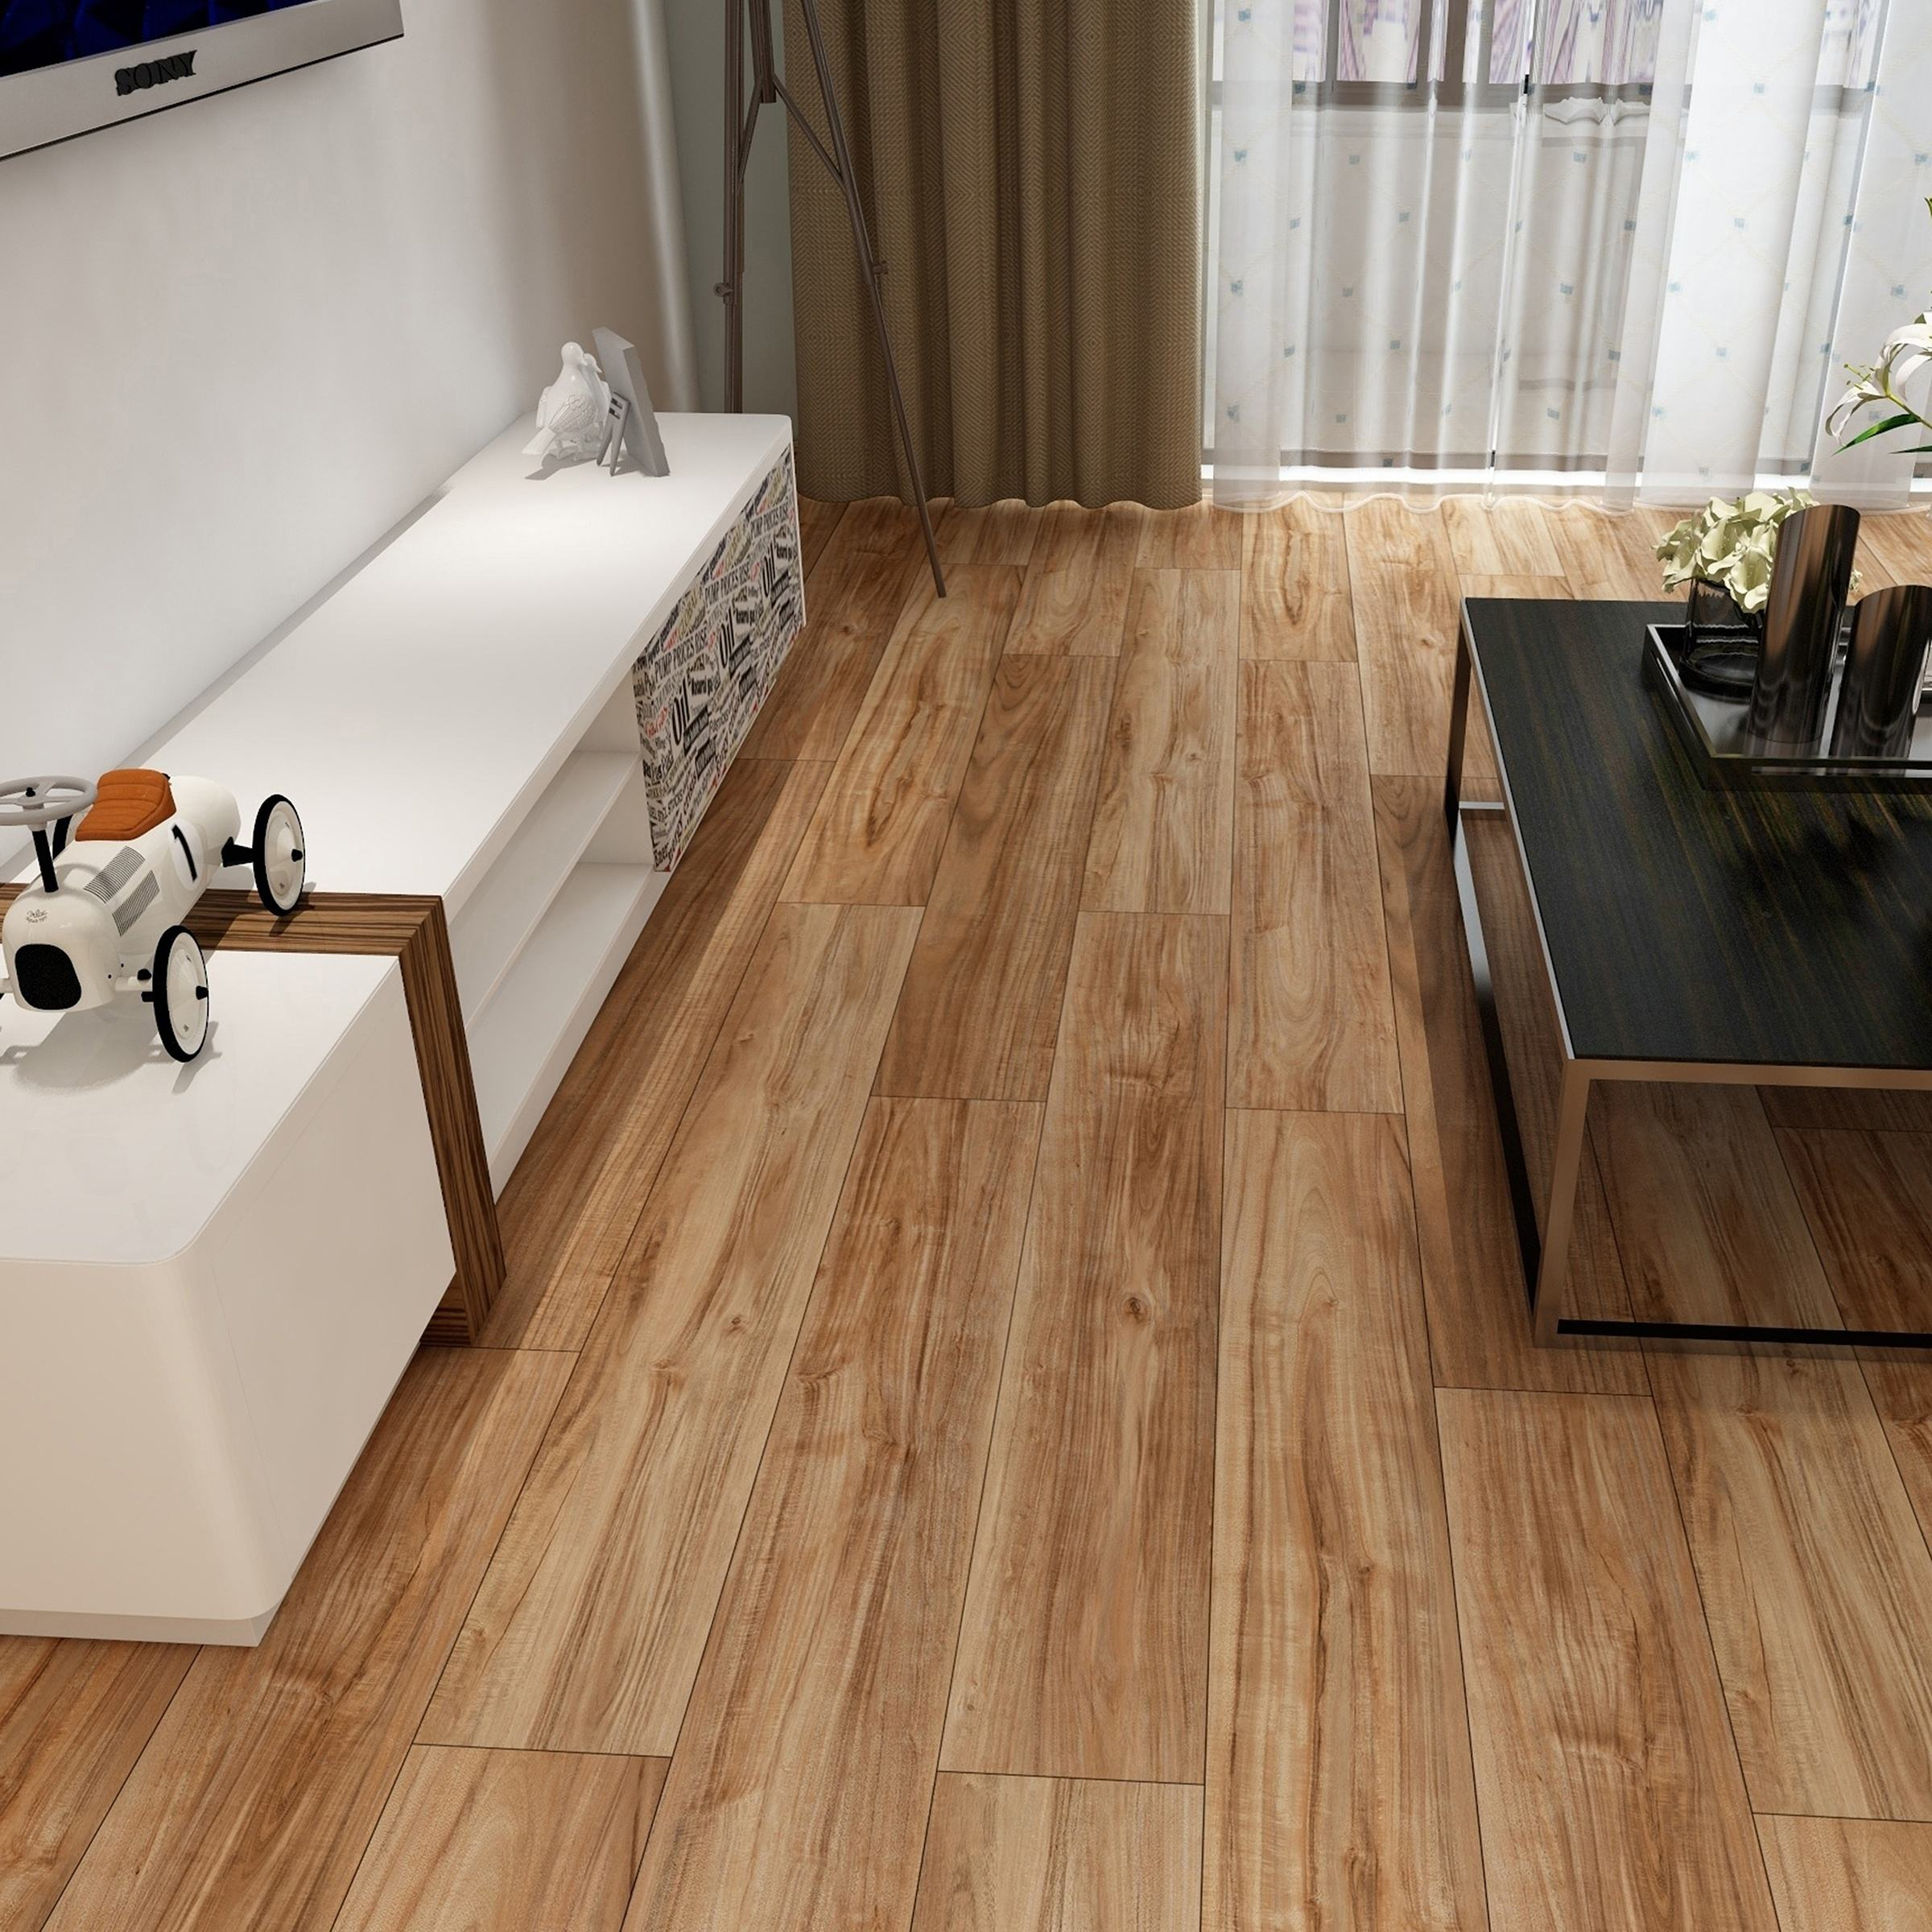 Wear-resistance Grey Brown Wood Grain Eco Waterproof Tranquility Vinyl Flooring